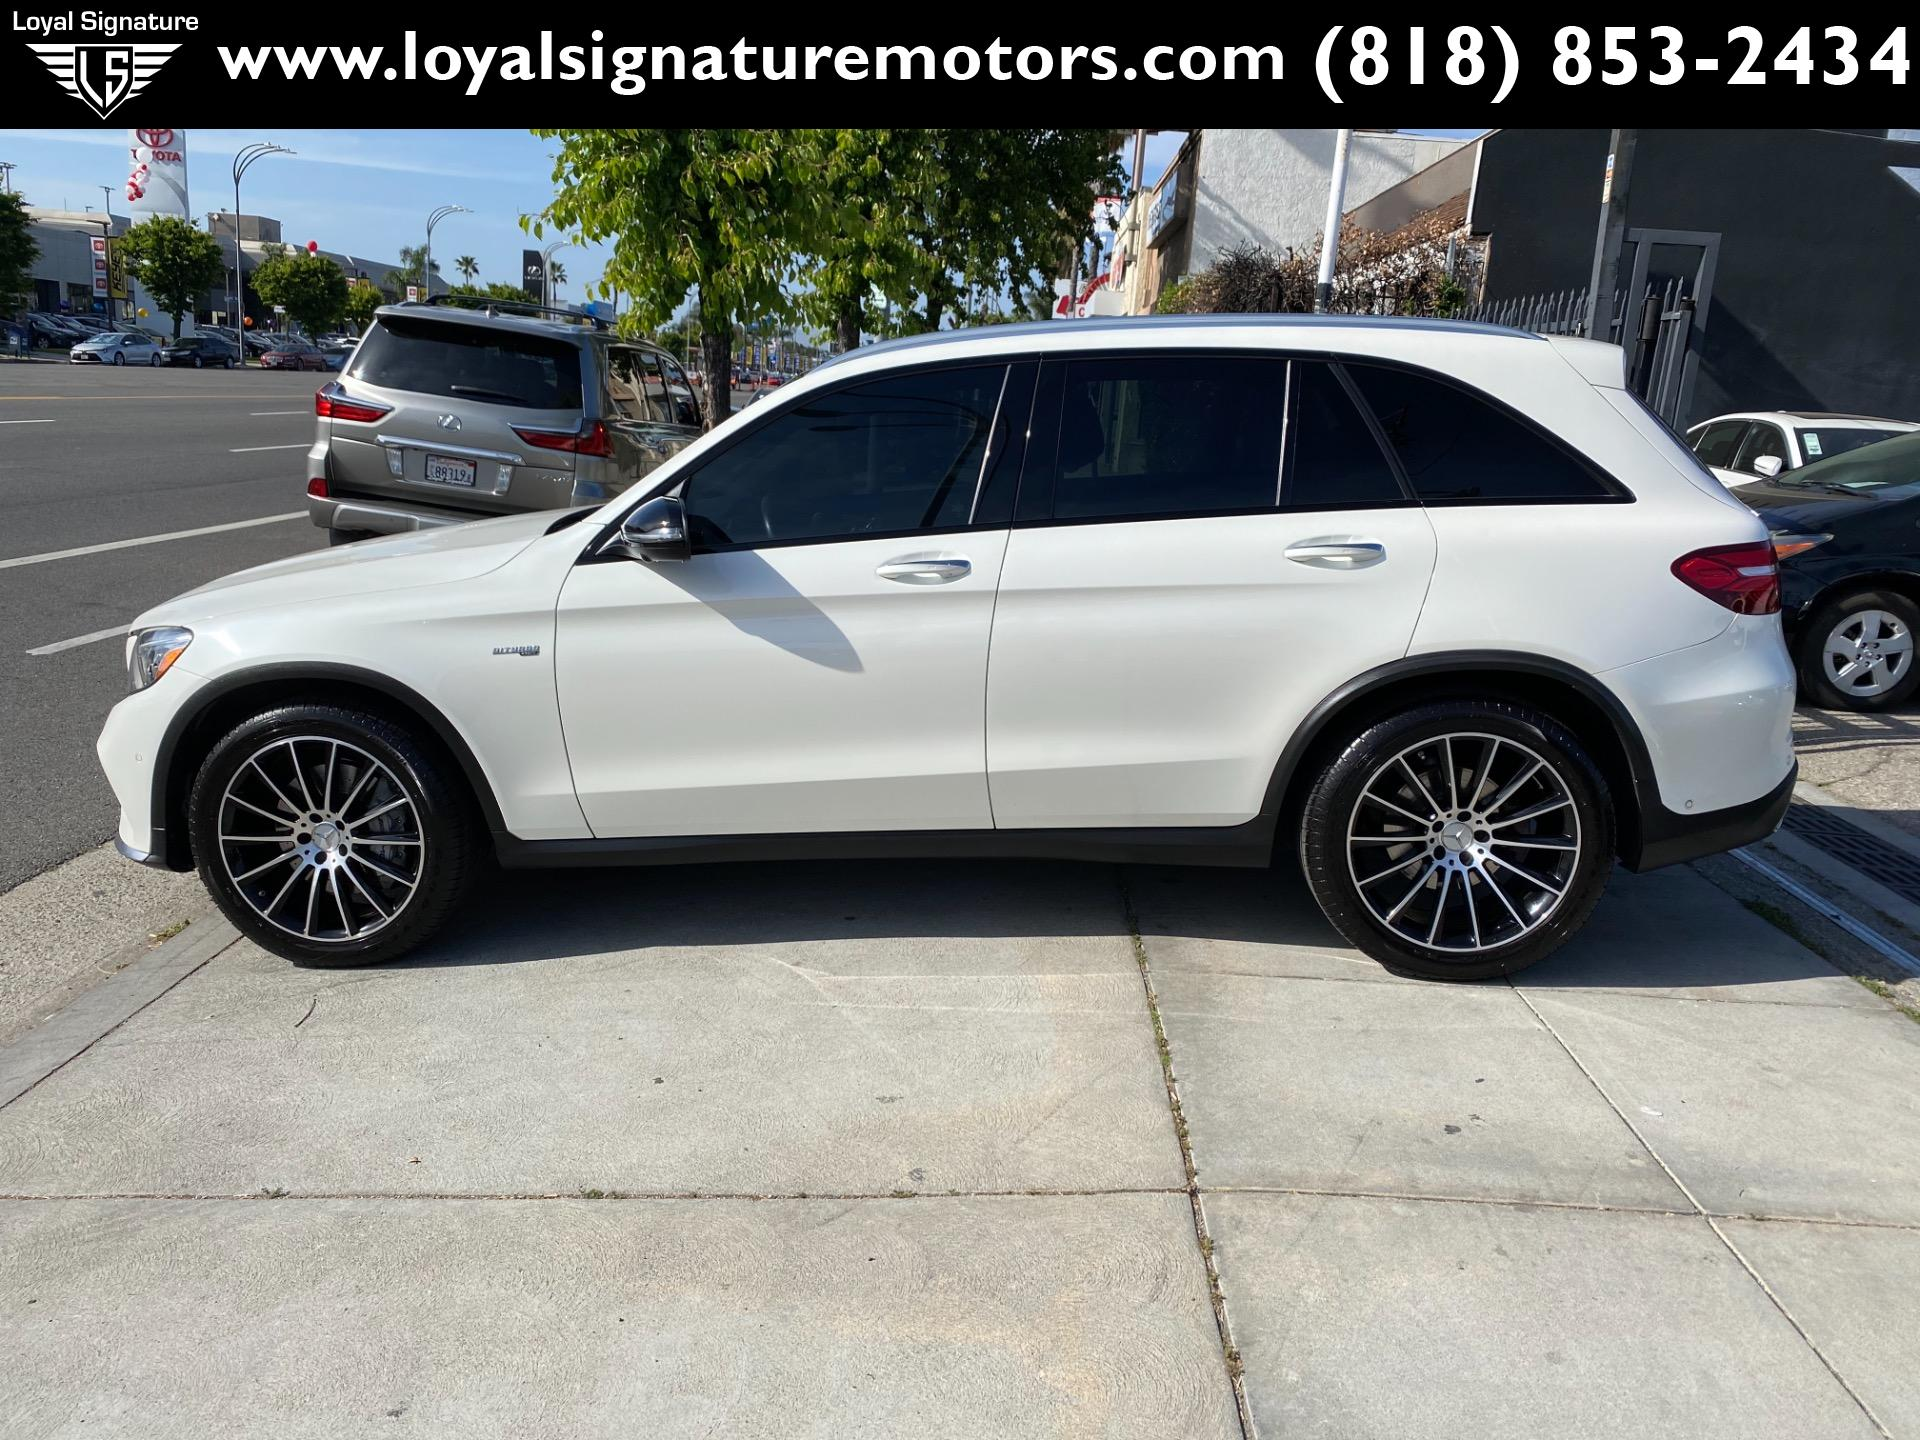 Used-2017-Mercedes-Benz-GLC-AMG-GLC-43